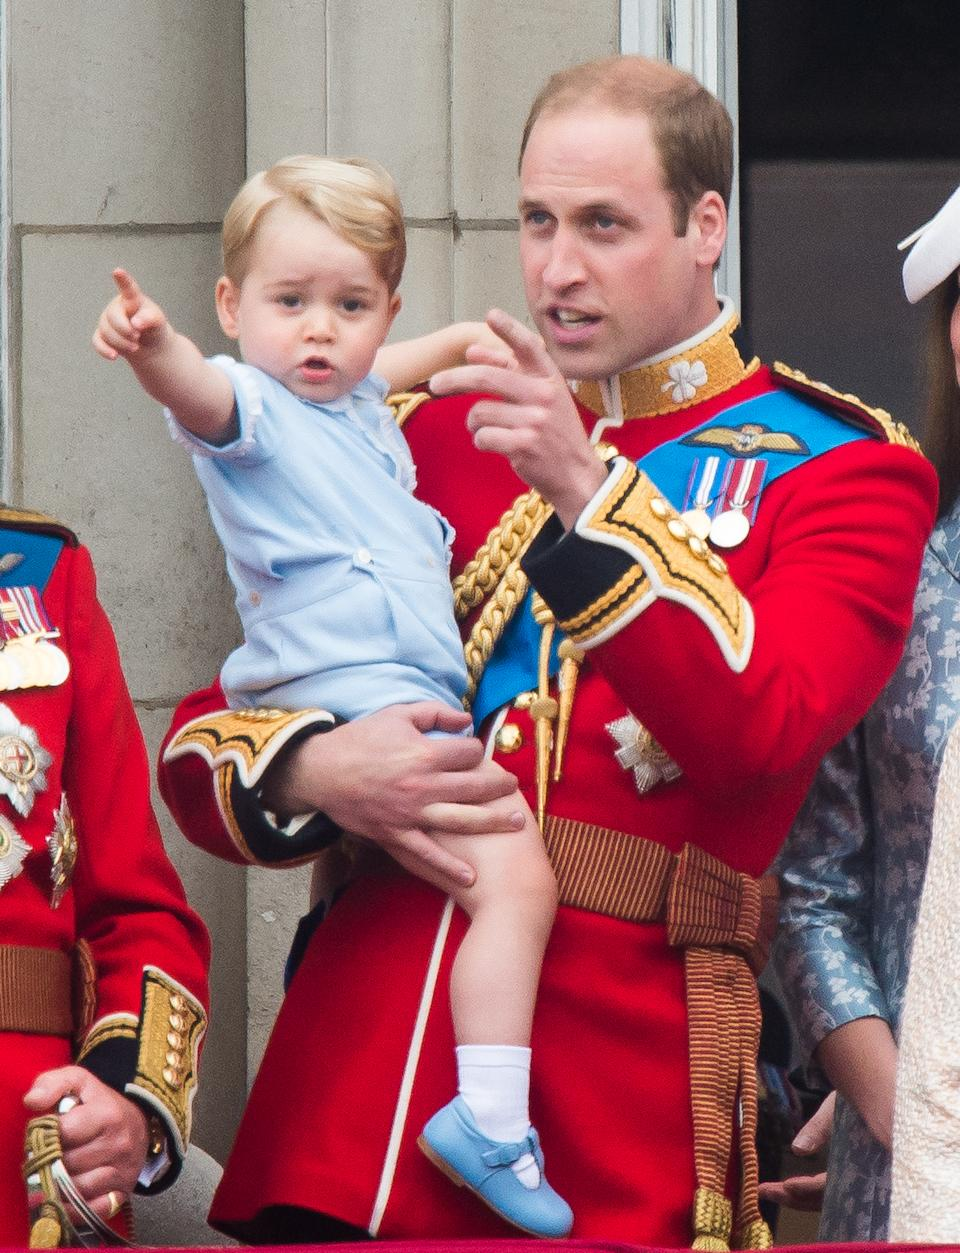 One-year-old Prince George attends his first Trooping the Colour. (PA Images)